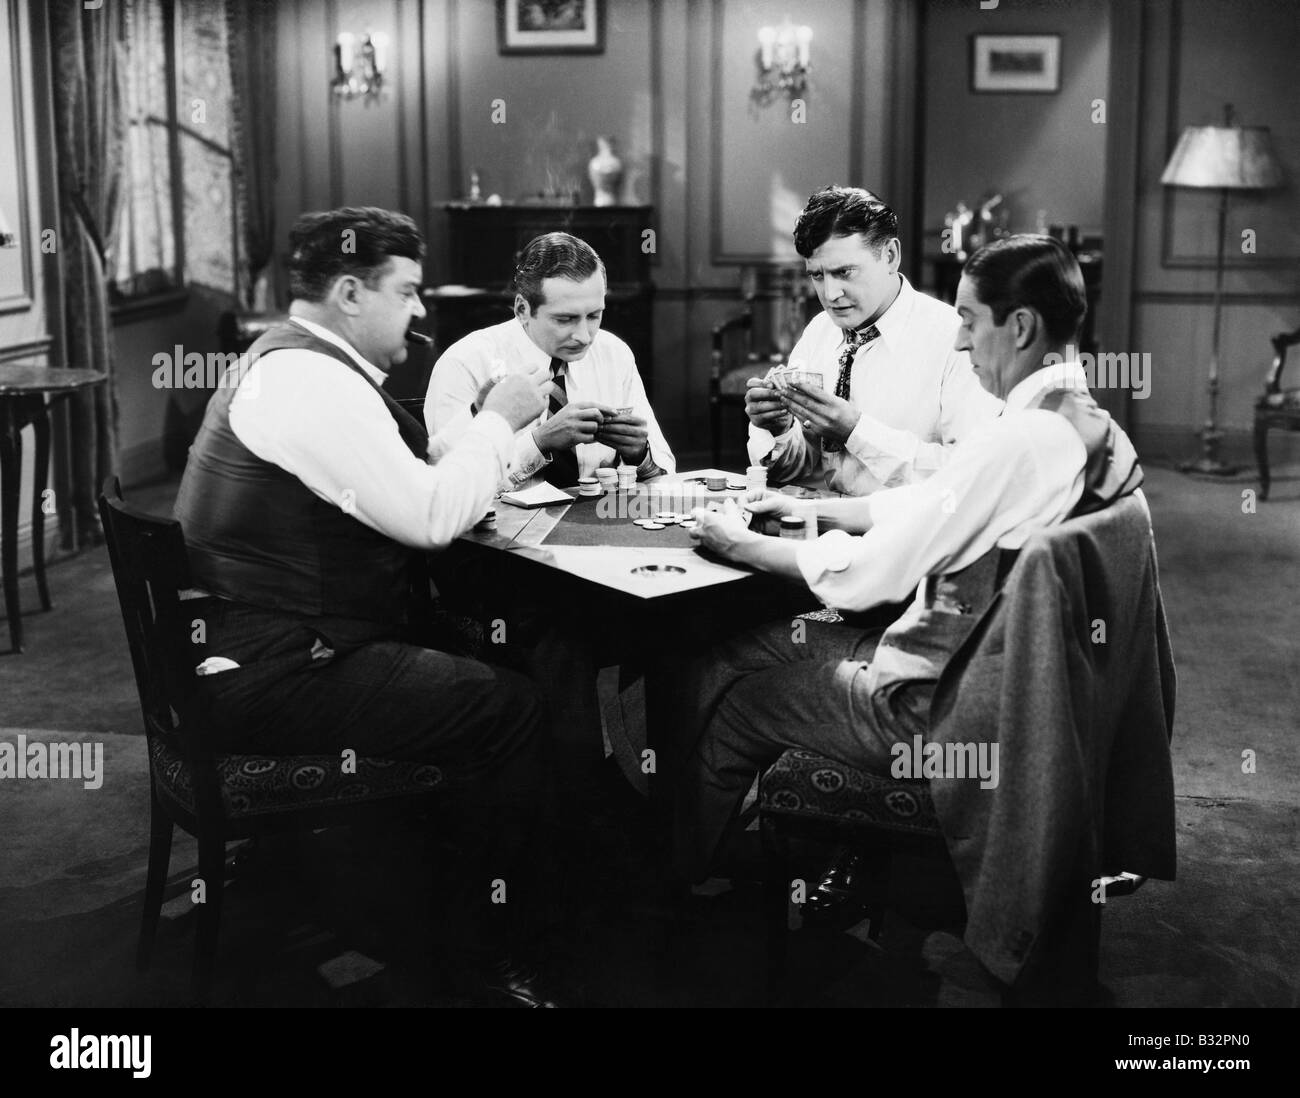 Four men playing cards - Stock Image